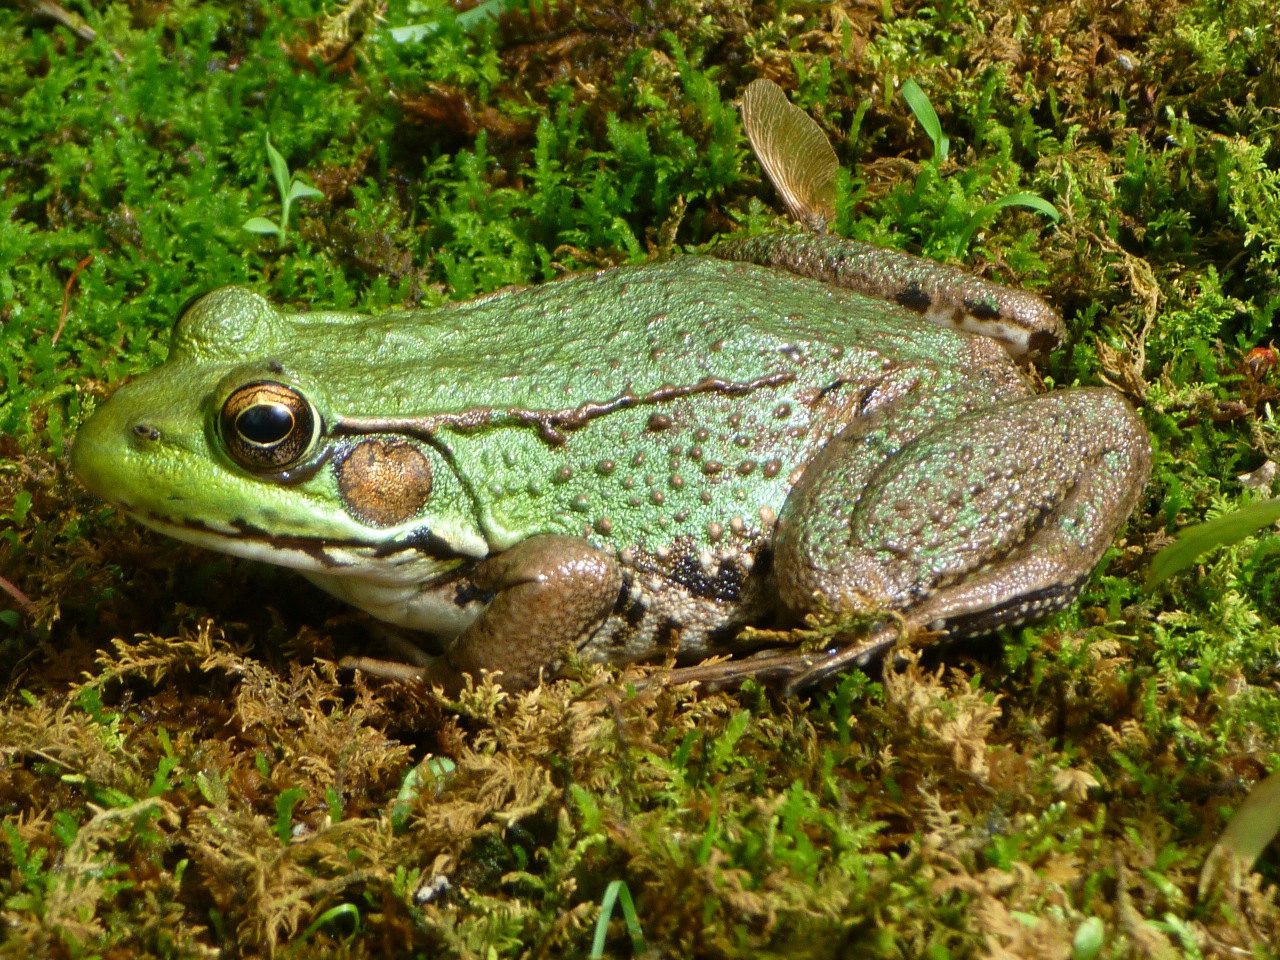 Northern_Green_Frog_-_Tewksbury,_NJ